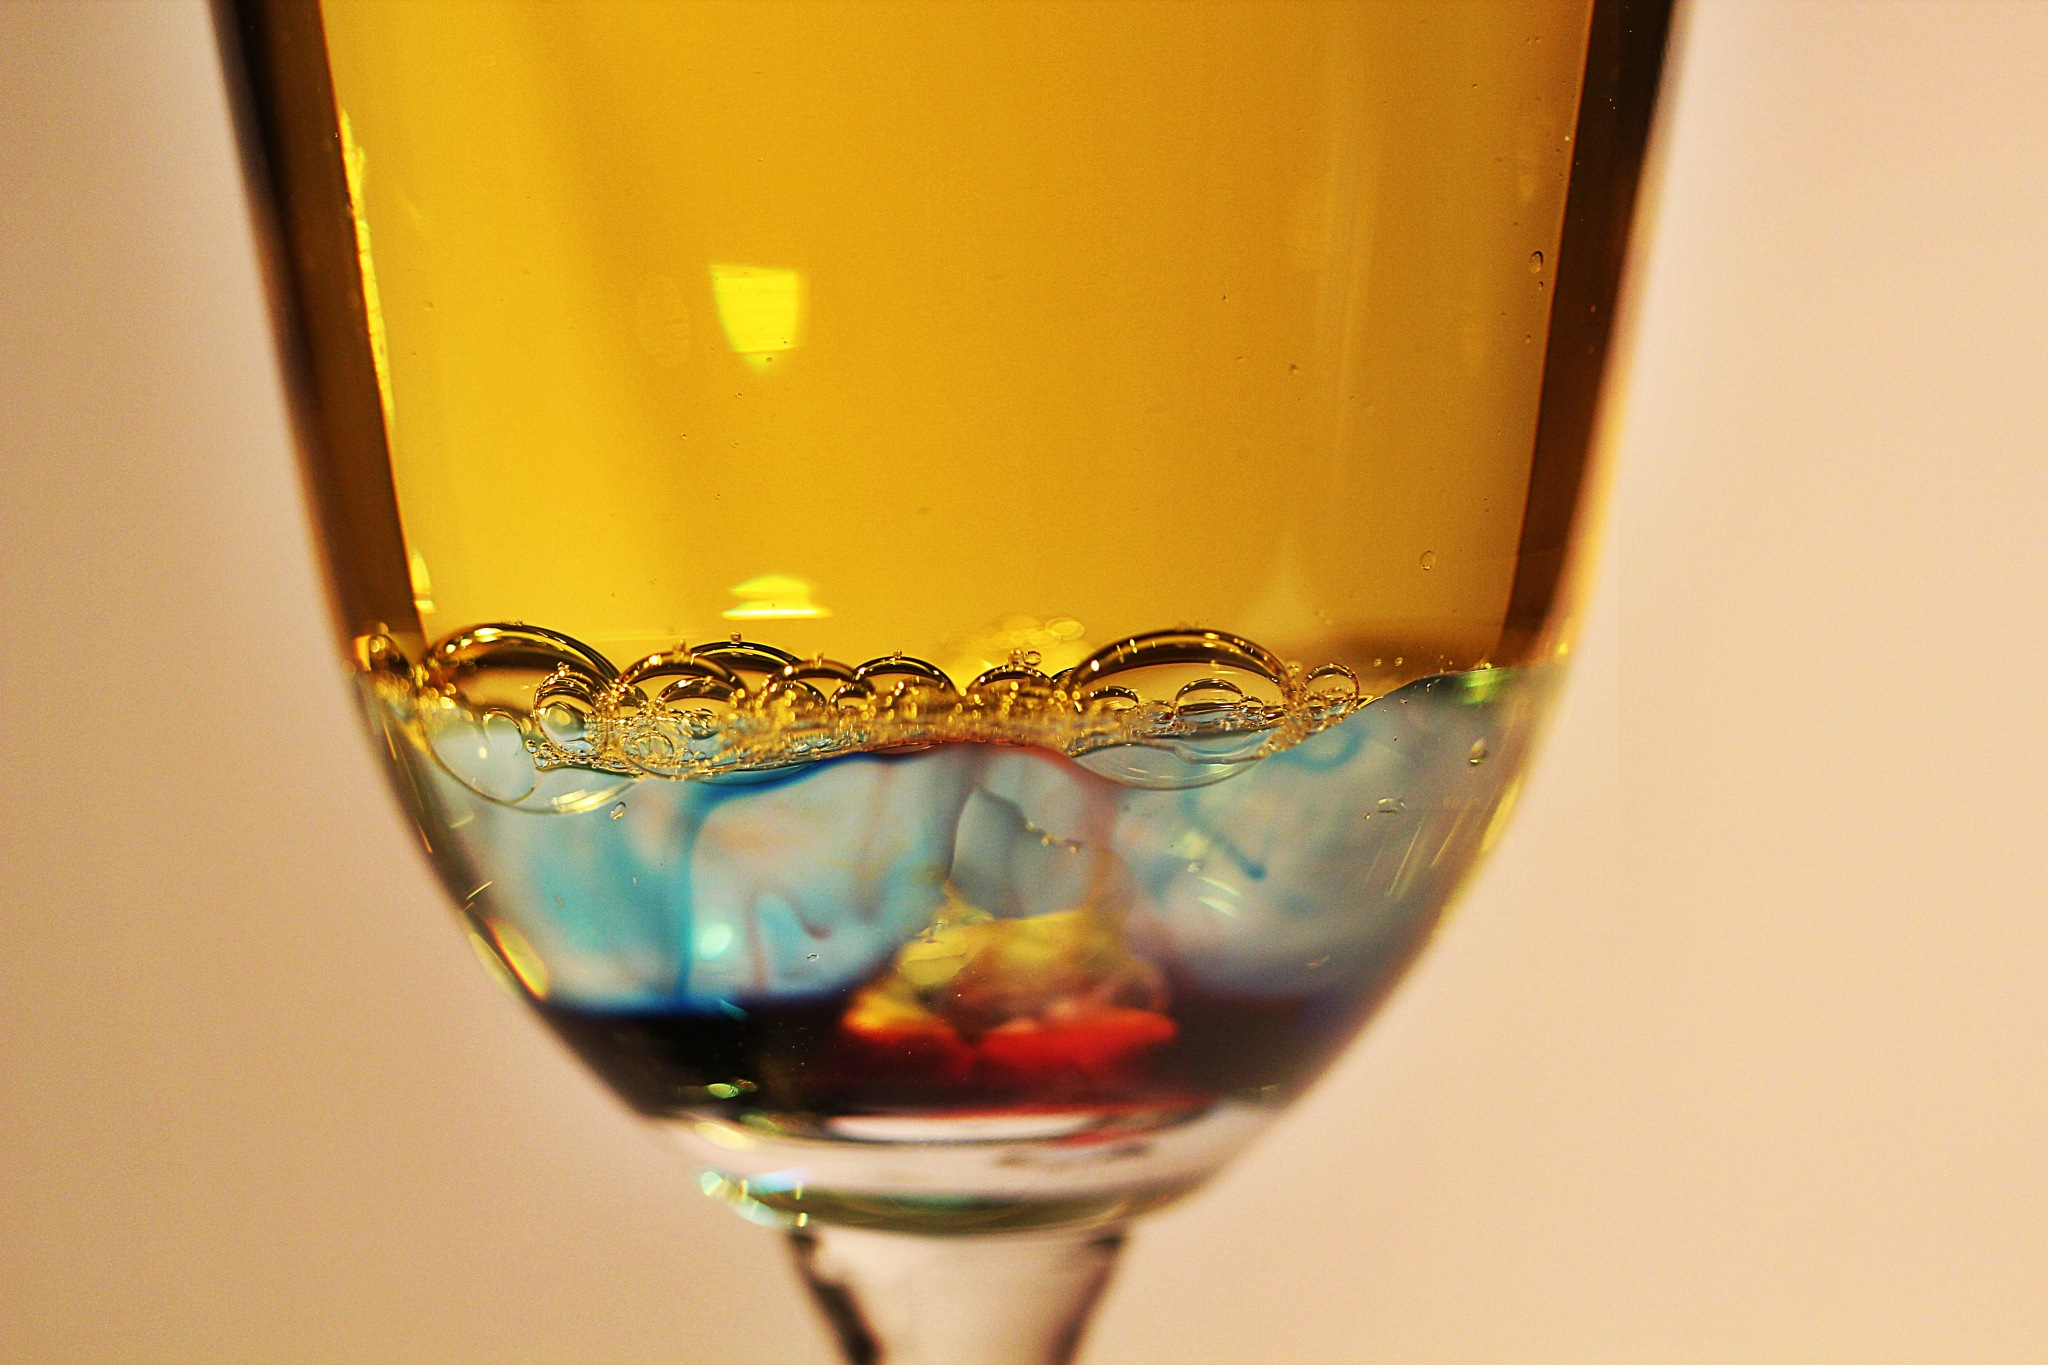 Science Experiment in a Wine Glass by danlandry69